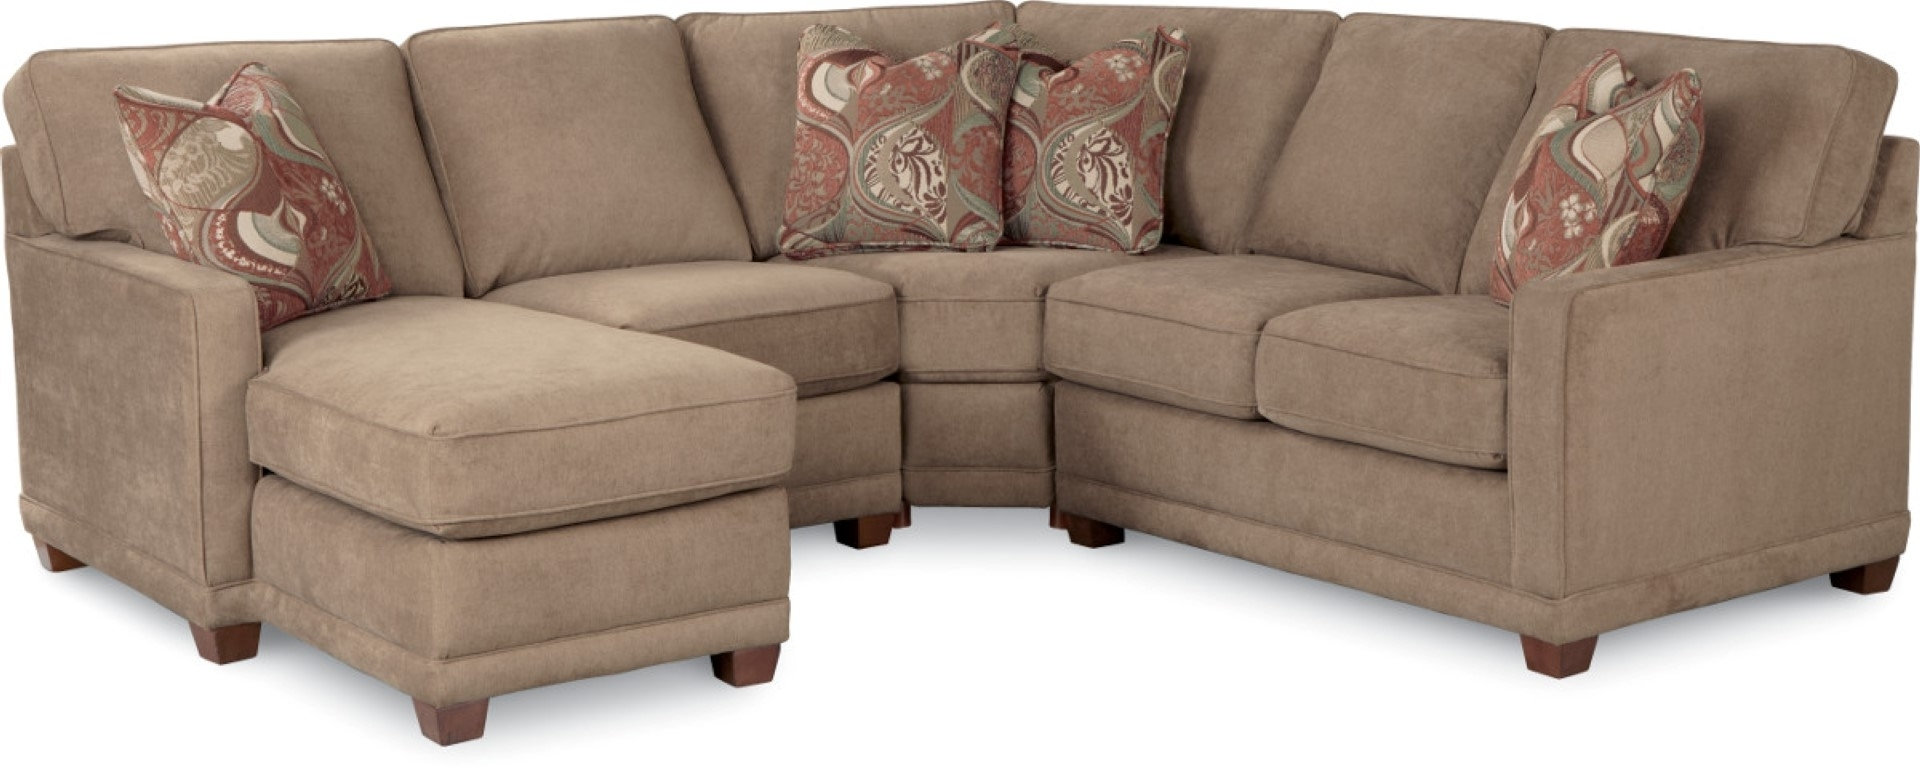 Most Current Kennedy Sectional Sofa – Town & Country Furniture In Dayton Ohio Sectional Sofas (View 14 of 20)